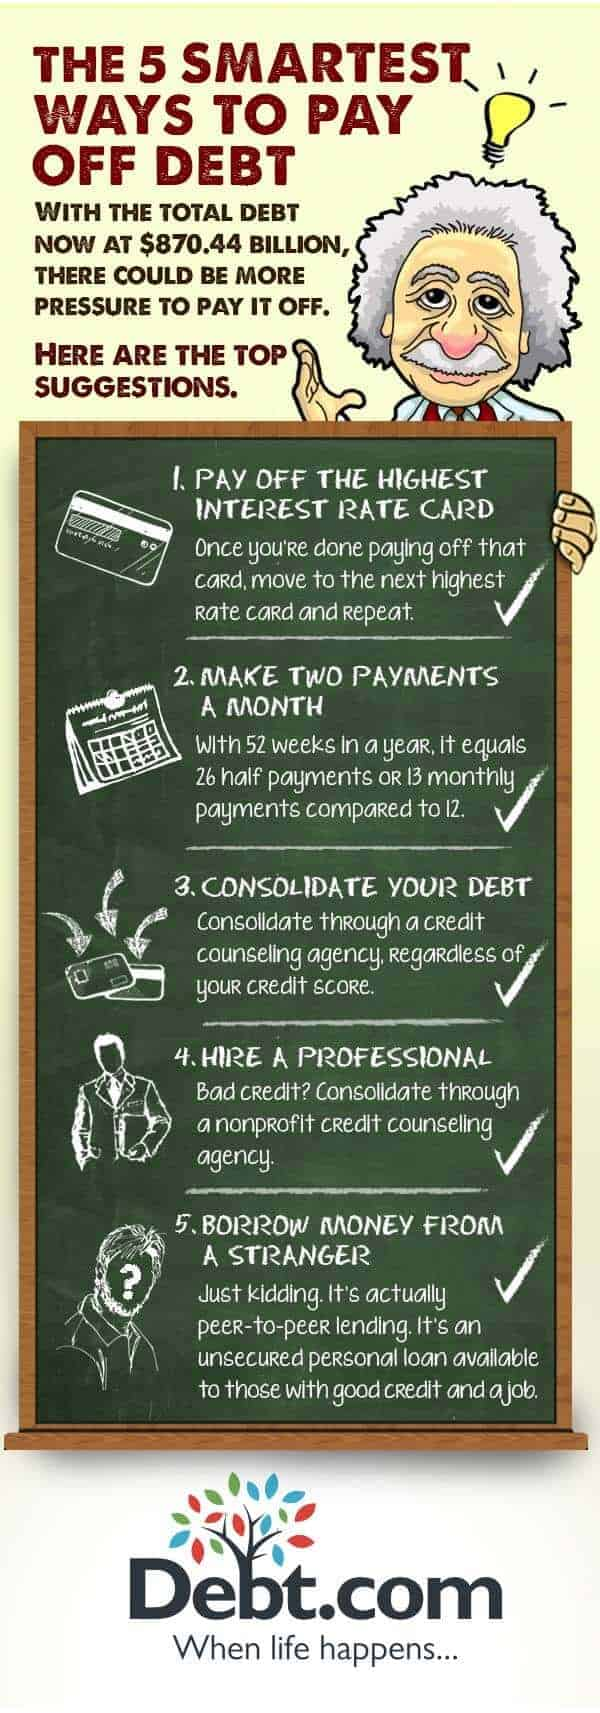 smartest ways to pay off debt